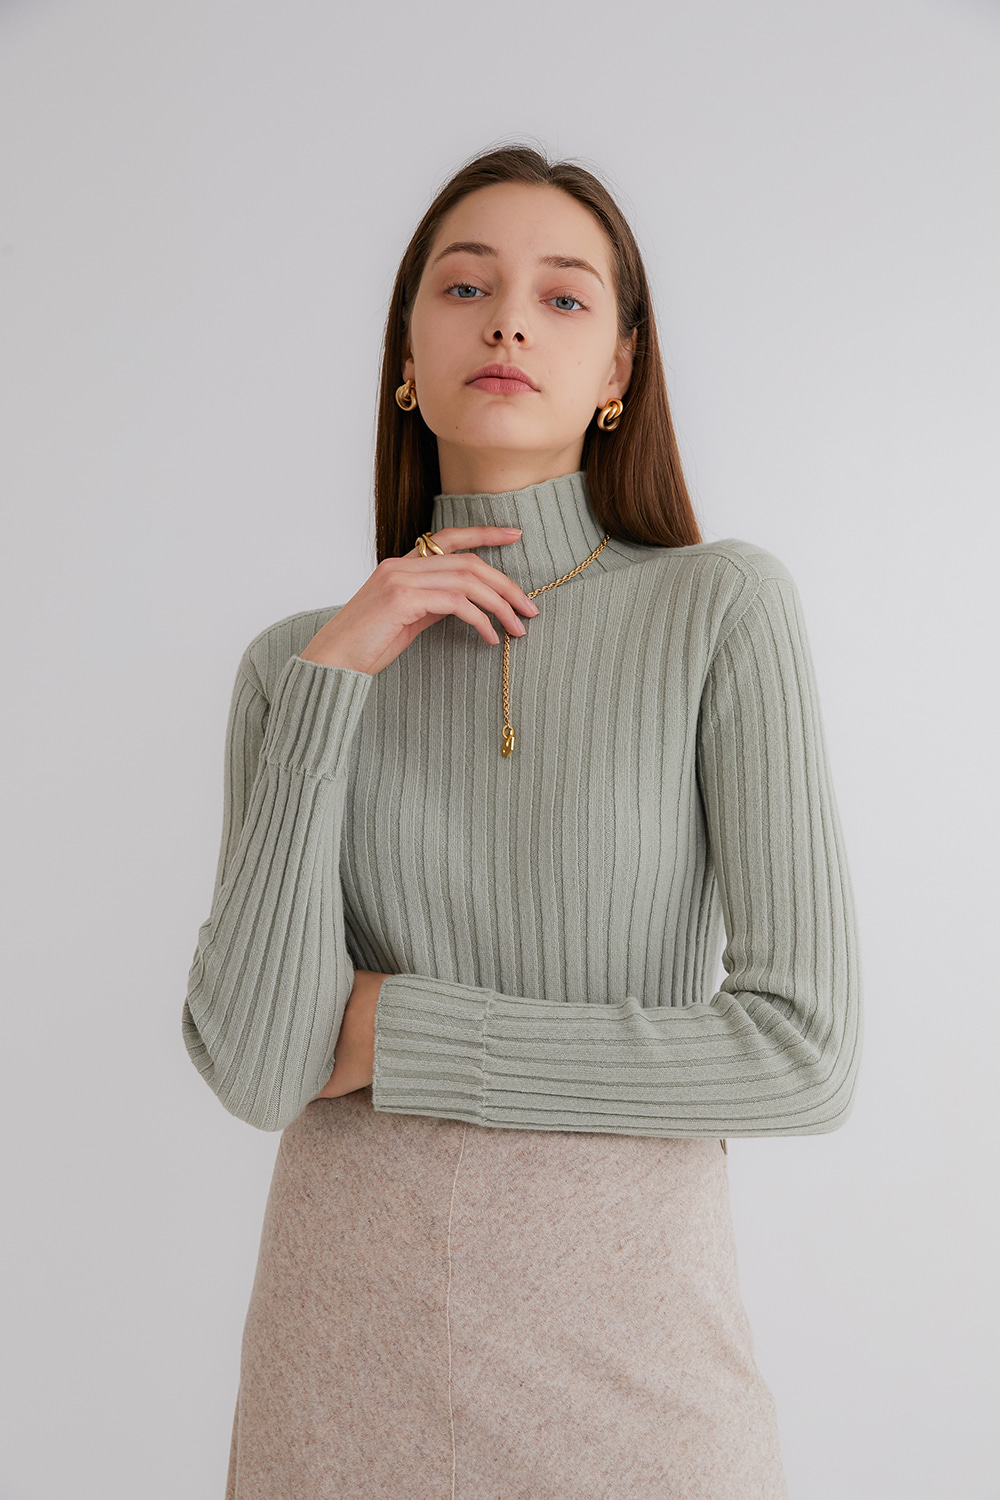 프리미엄 캐시미어 100 골지 스웨터 [Pure cashmere100 ribbed soft-touch sweater by whole-garment knitting - SAGE MINT]